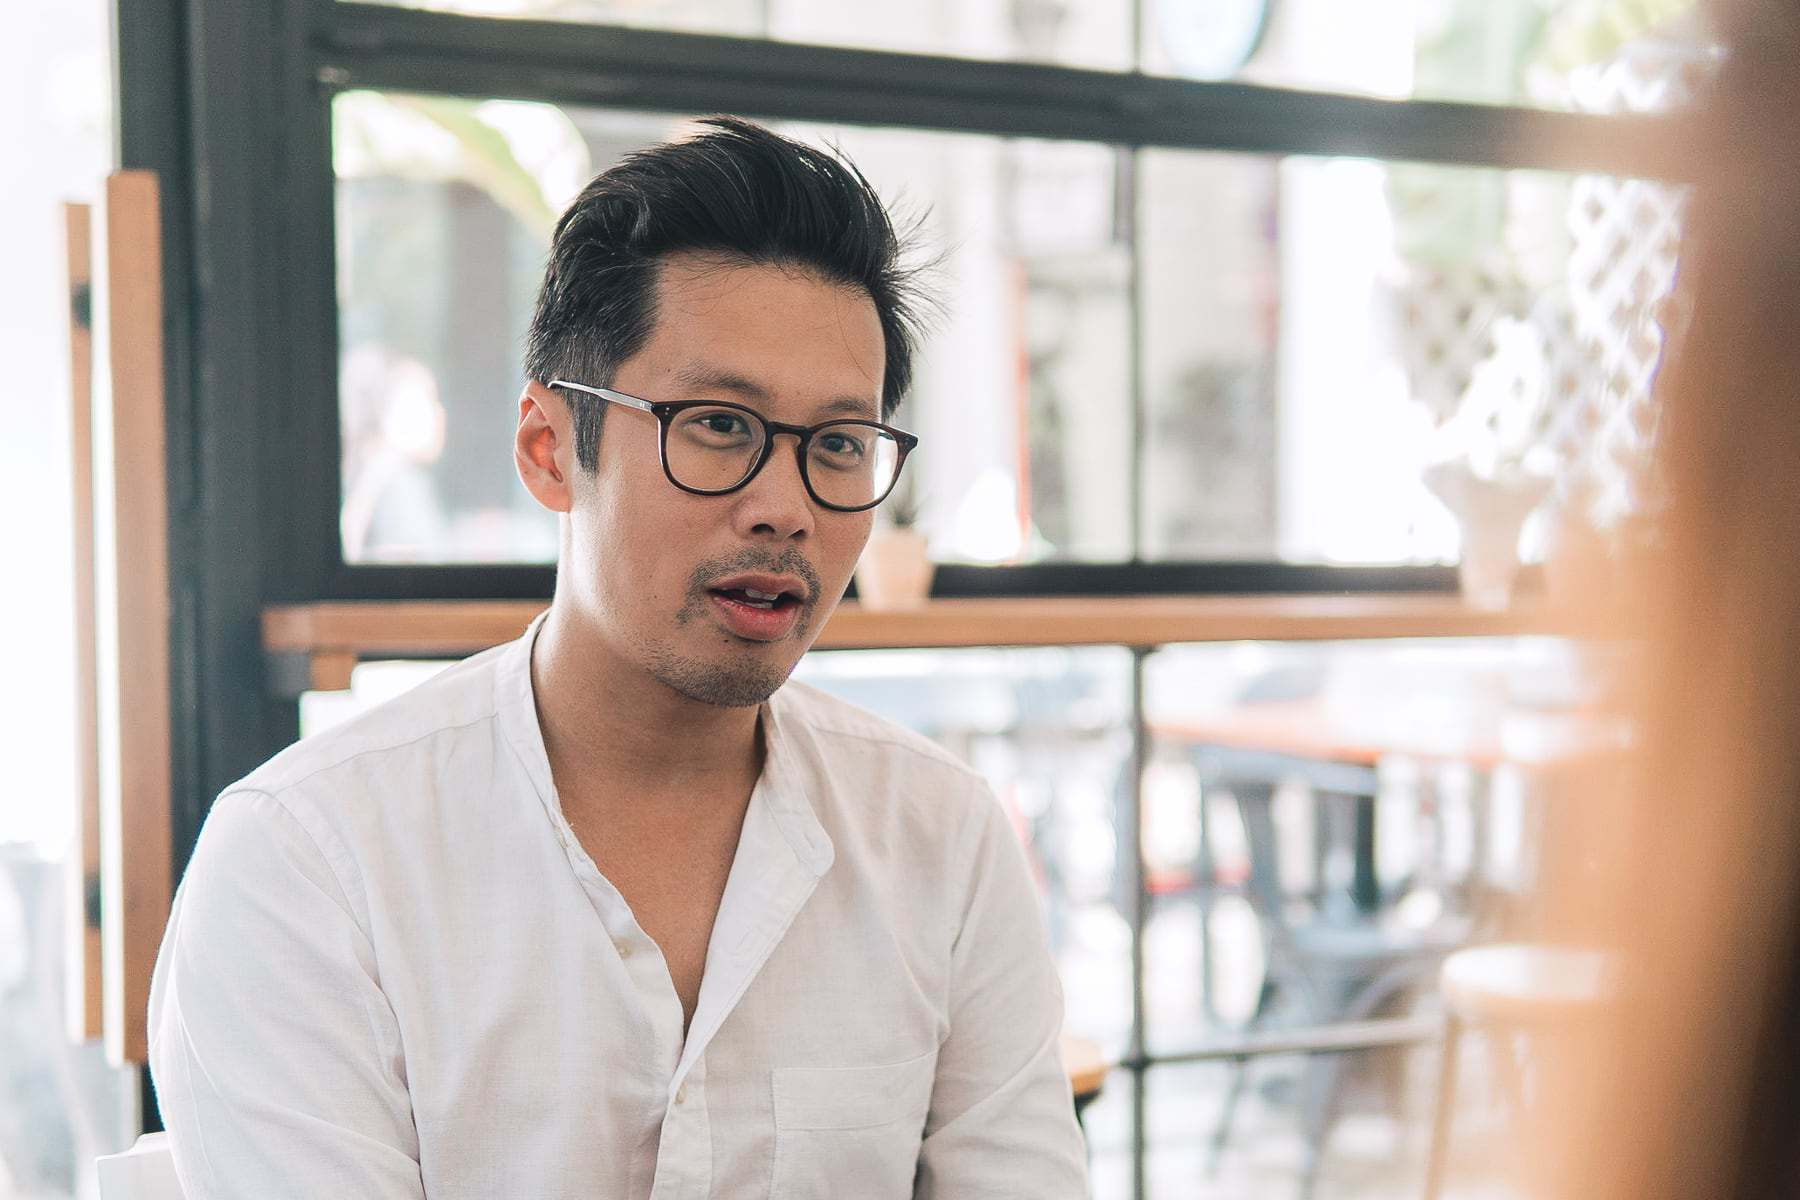 Poke Saigon Founder Emmanuel Tieu's Healthy Food Revolution